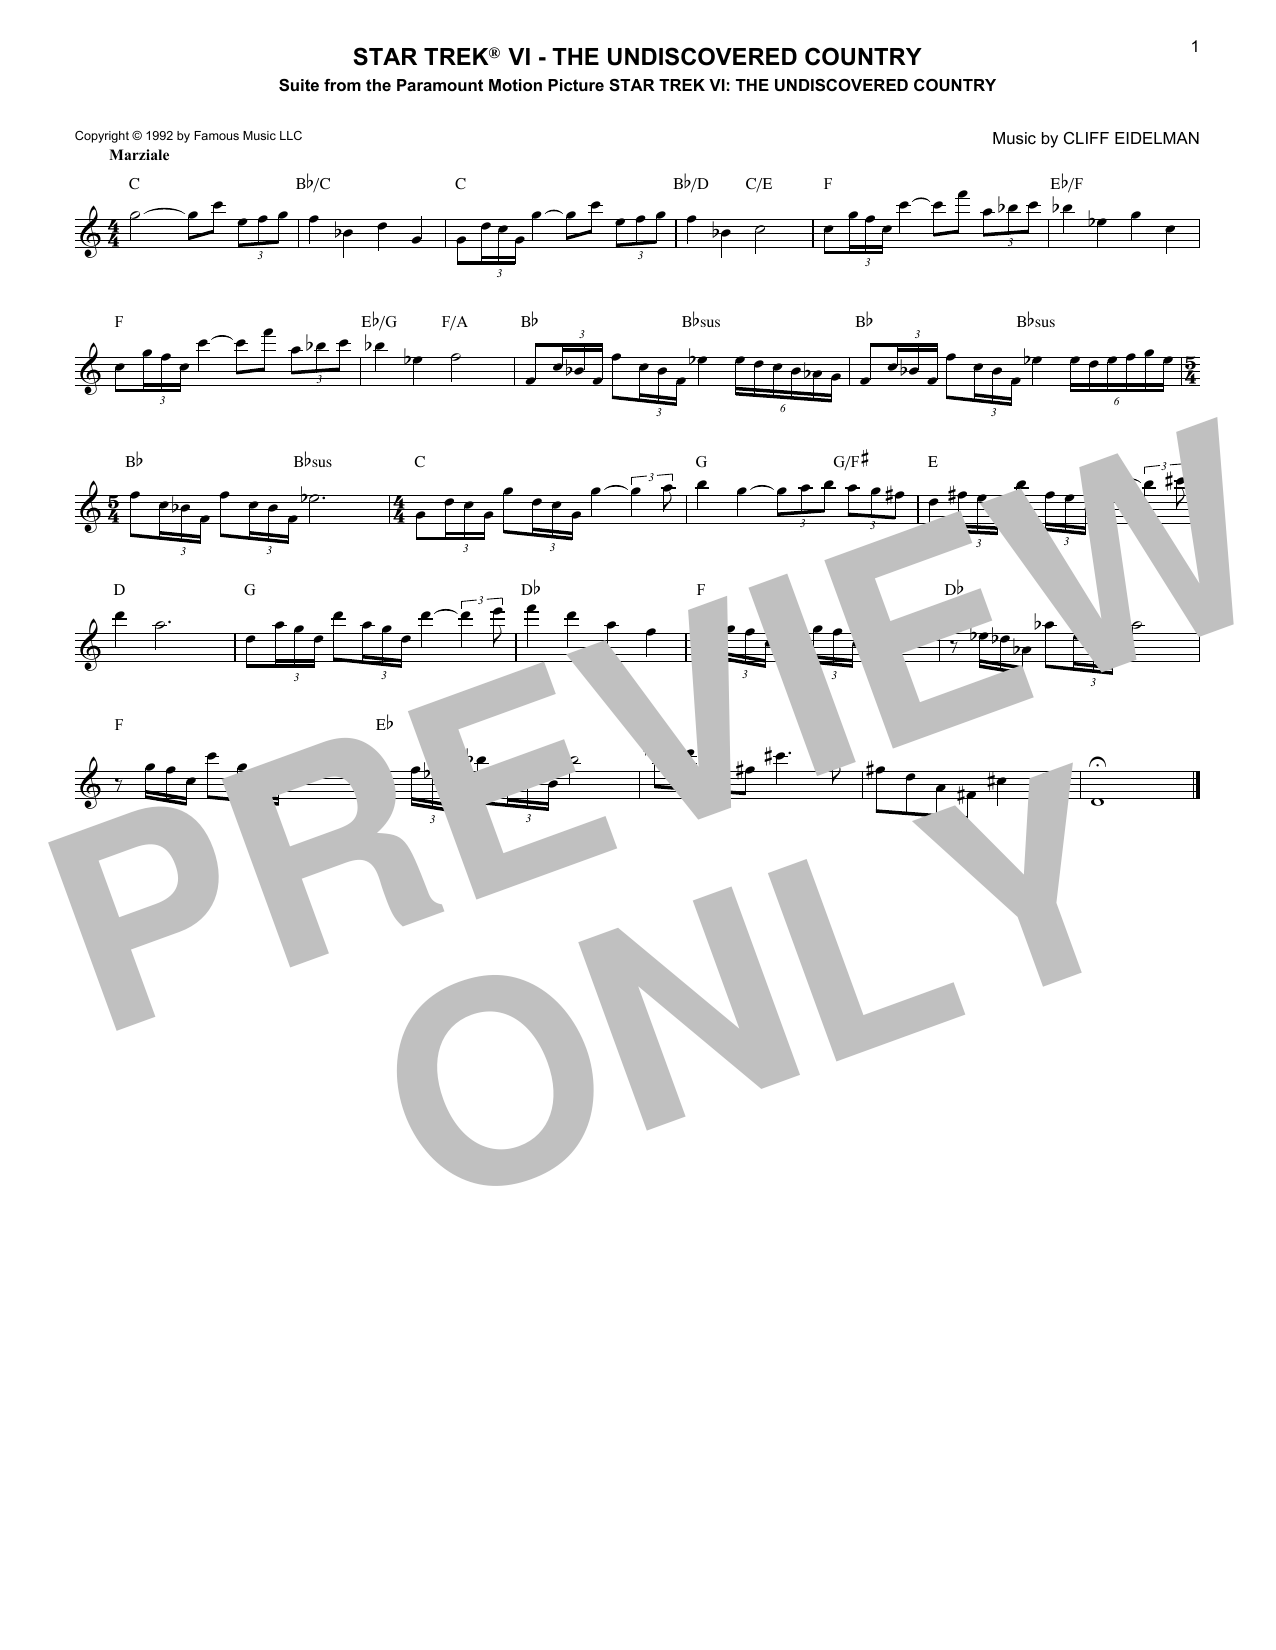 Star Trek VI - The Undiscovered Country Sheet Music